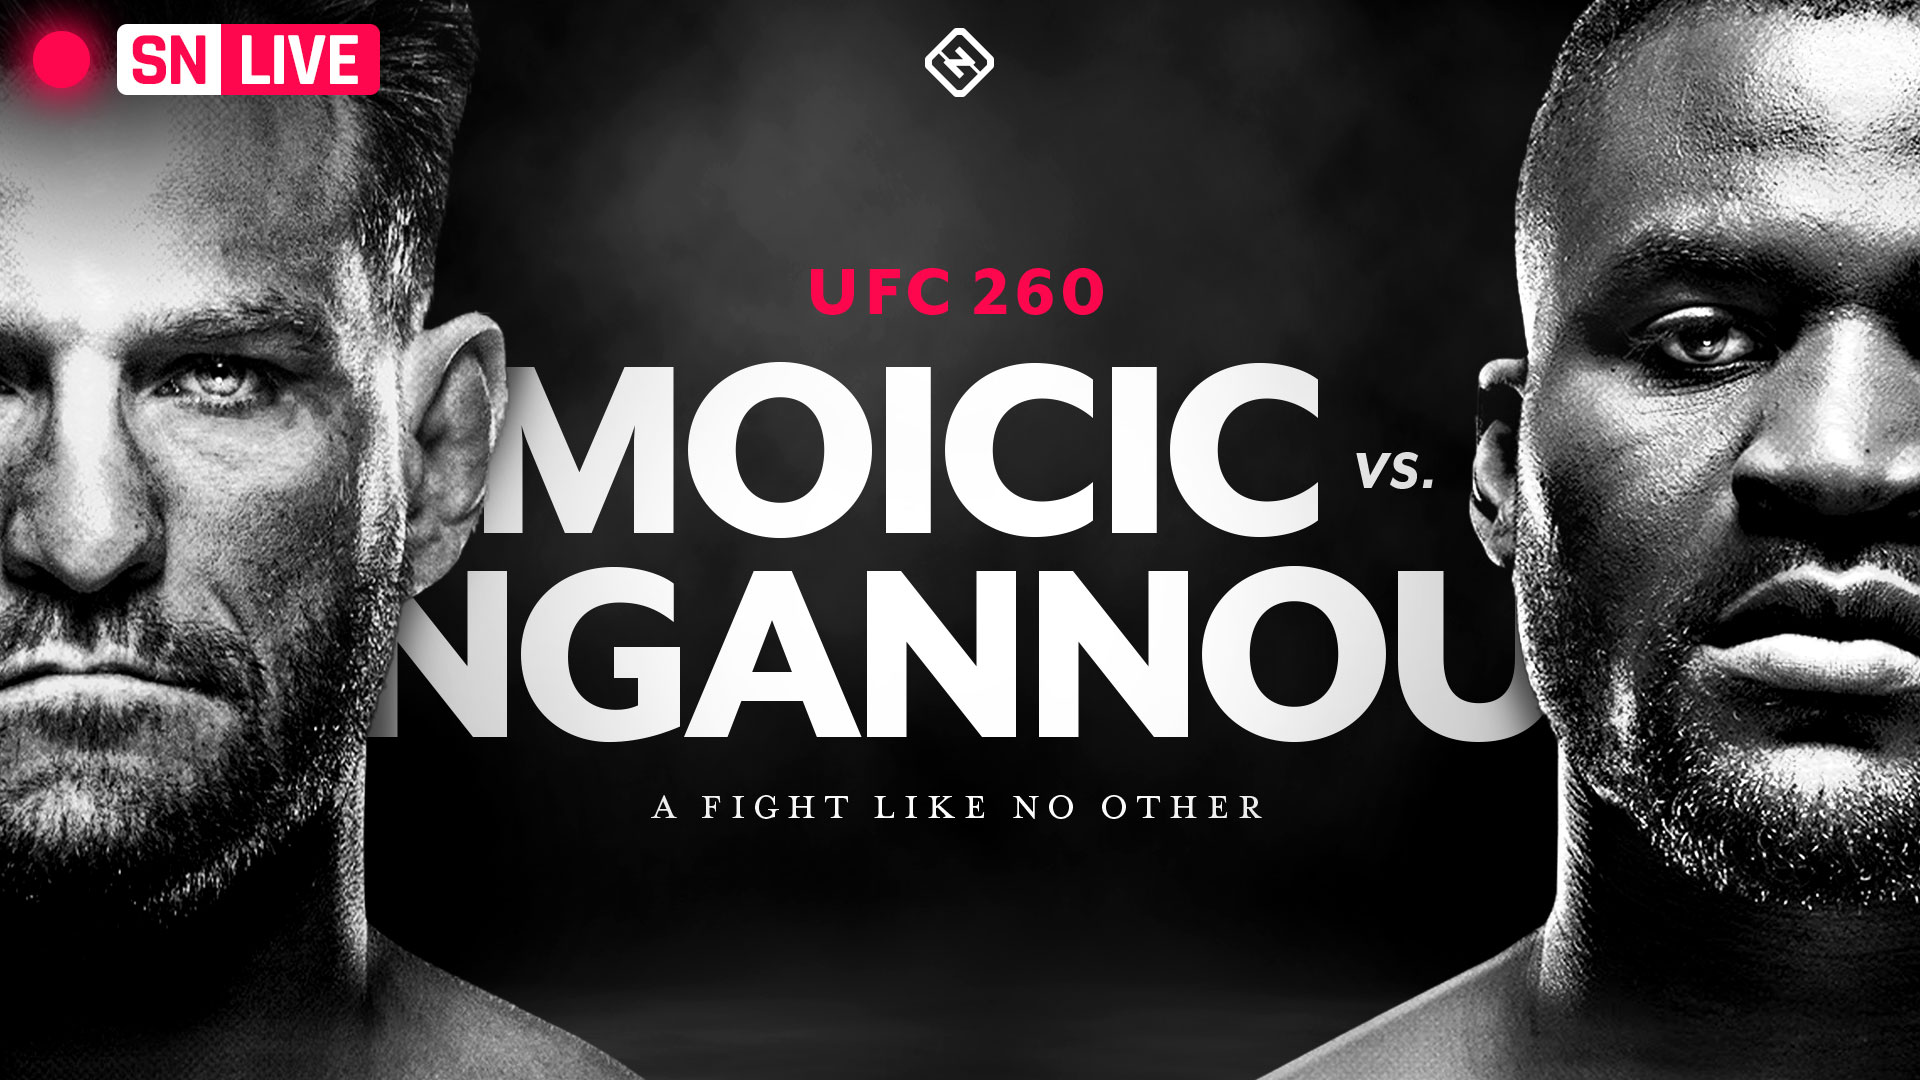 Stipe Miocic vs. Francis Ngannou 2 live fight updates, results, highlights from UFC 260